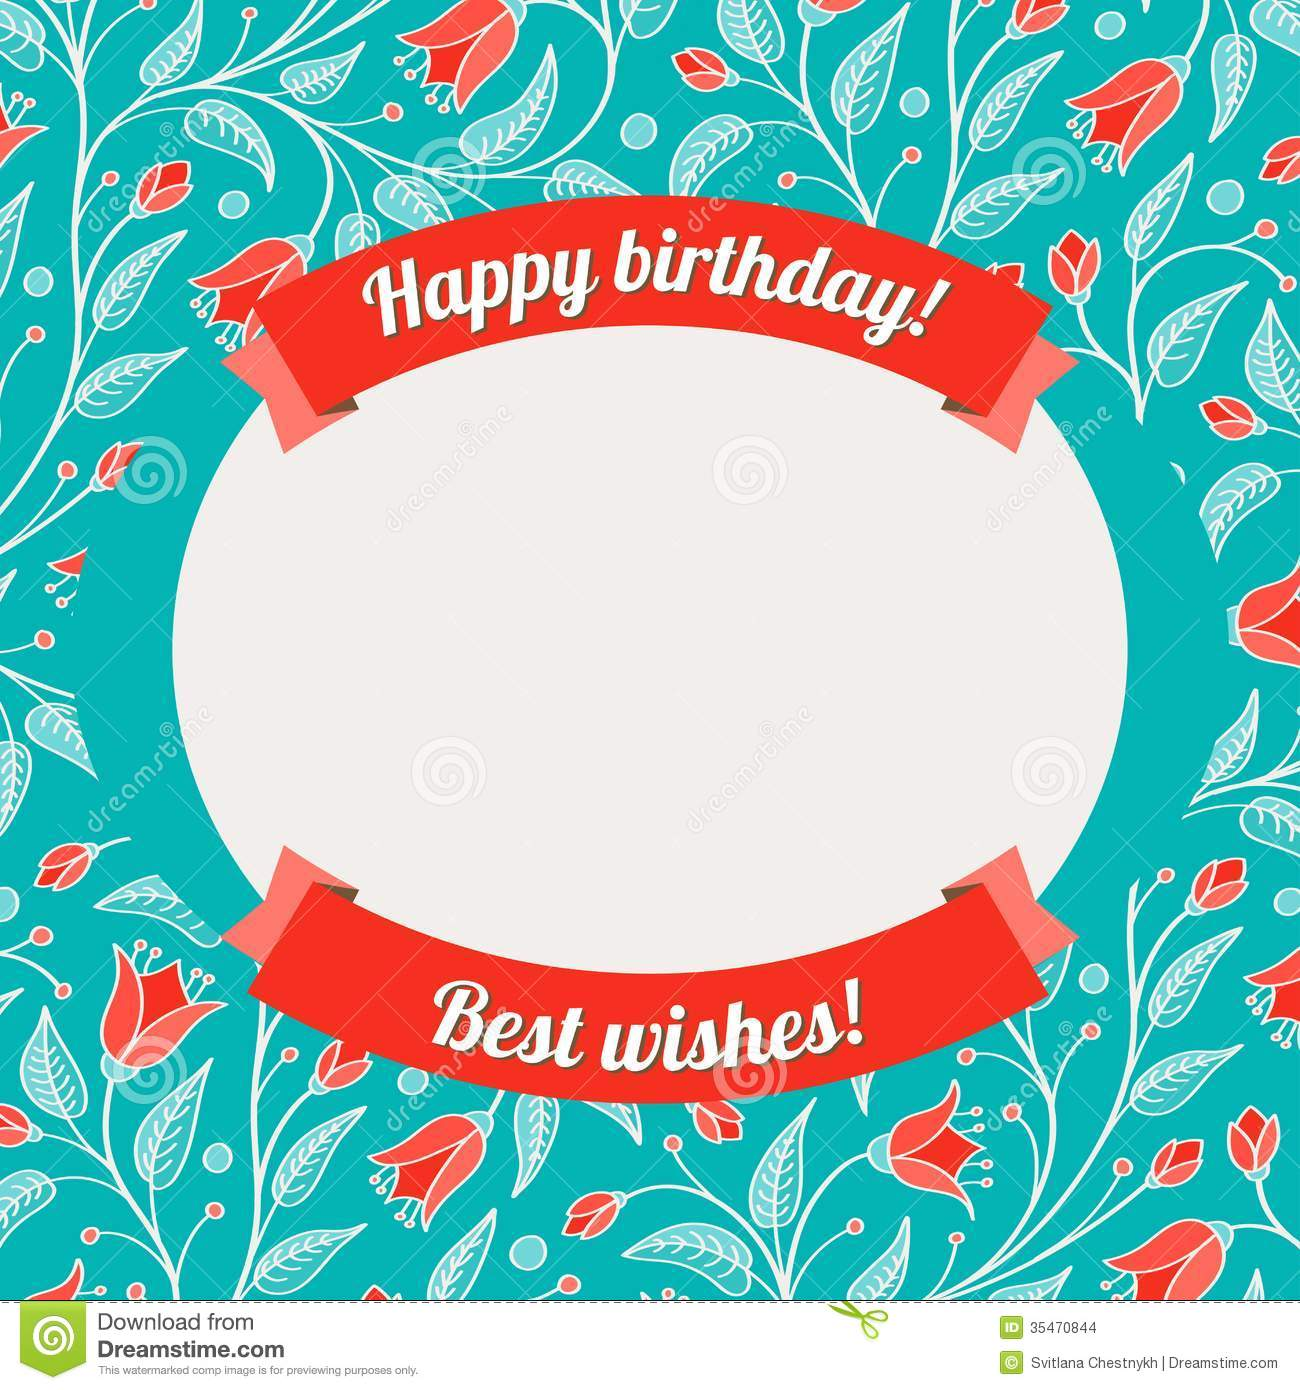 template for greeting card or invitation stock vector - illustration